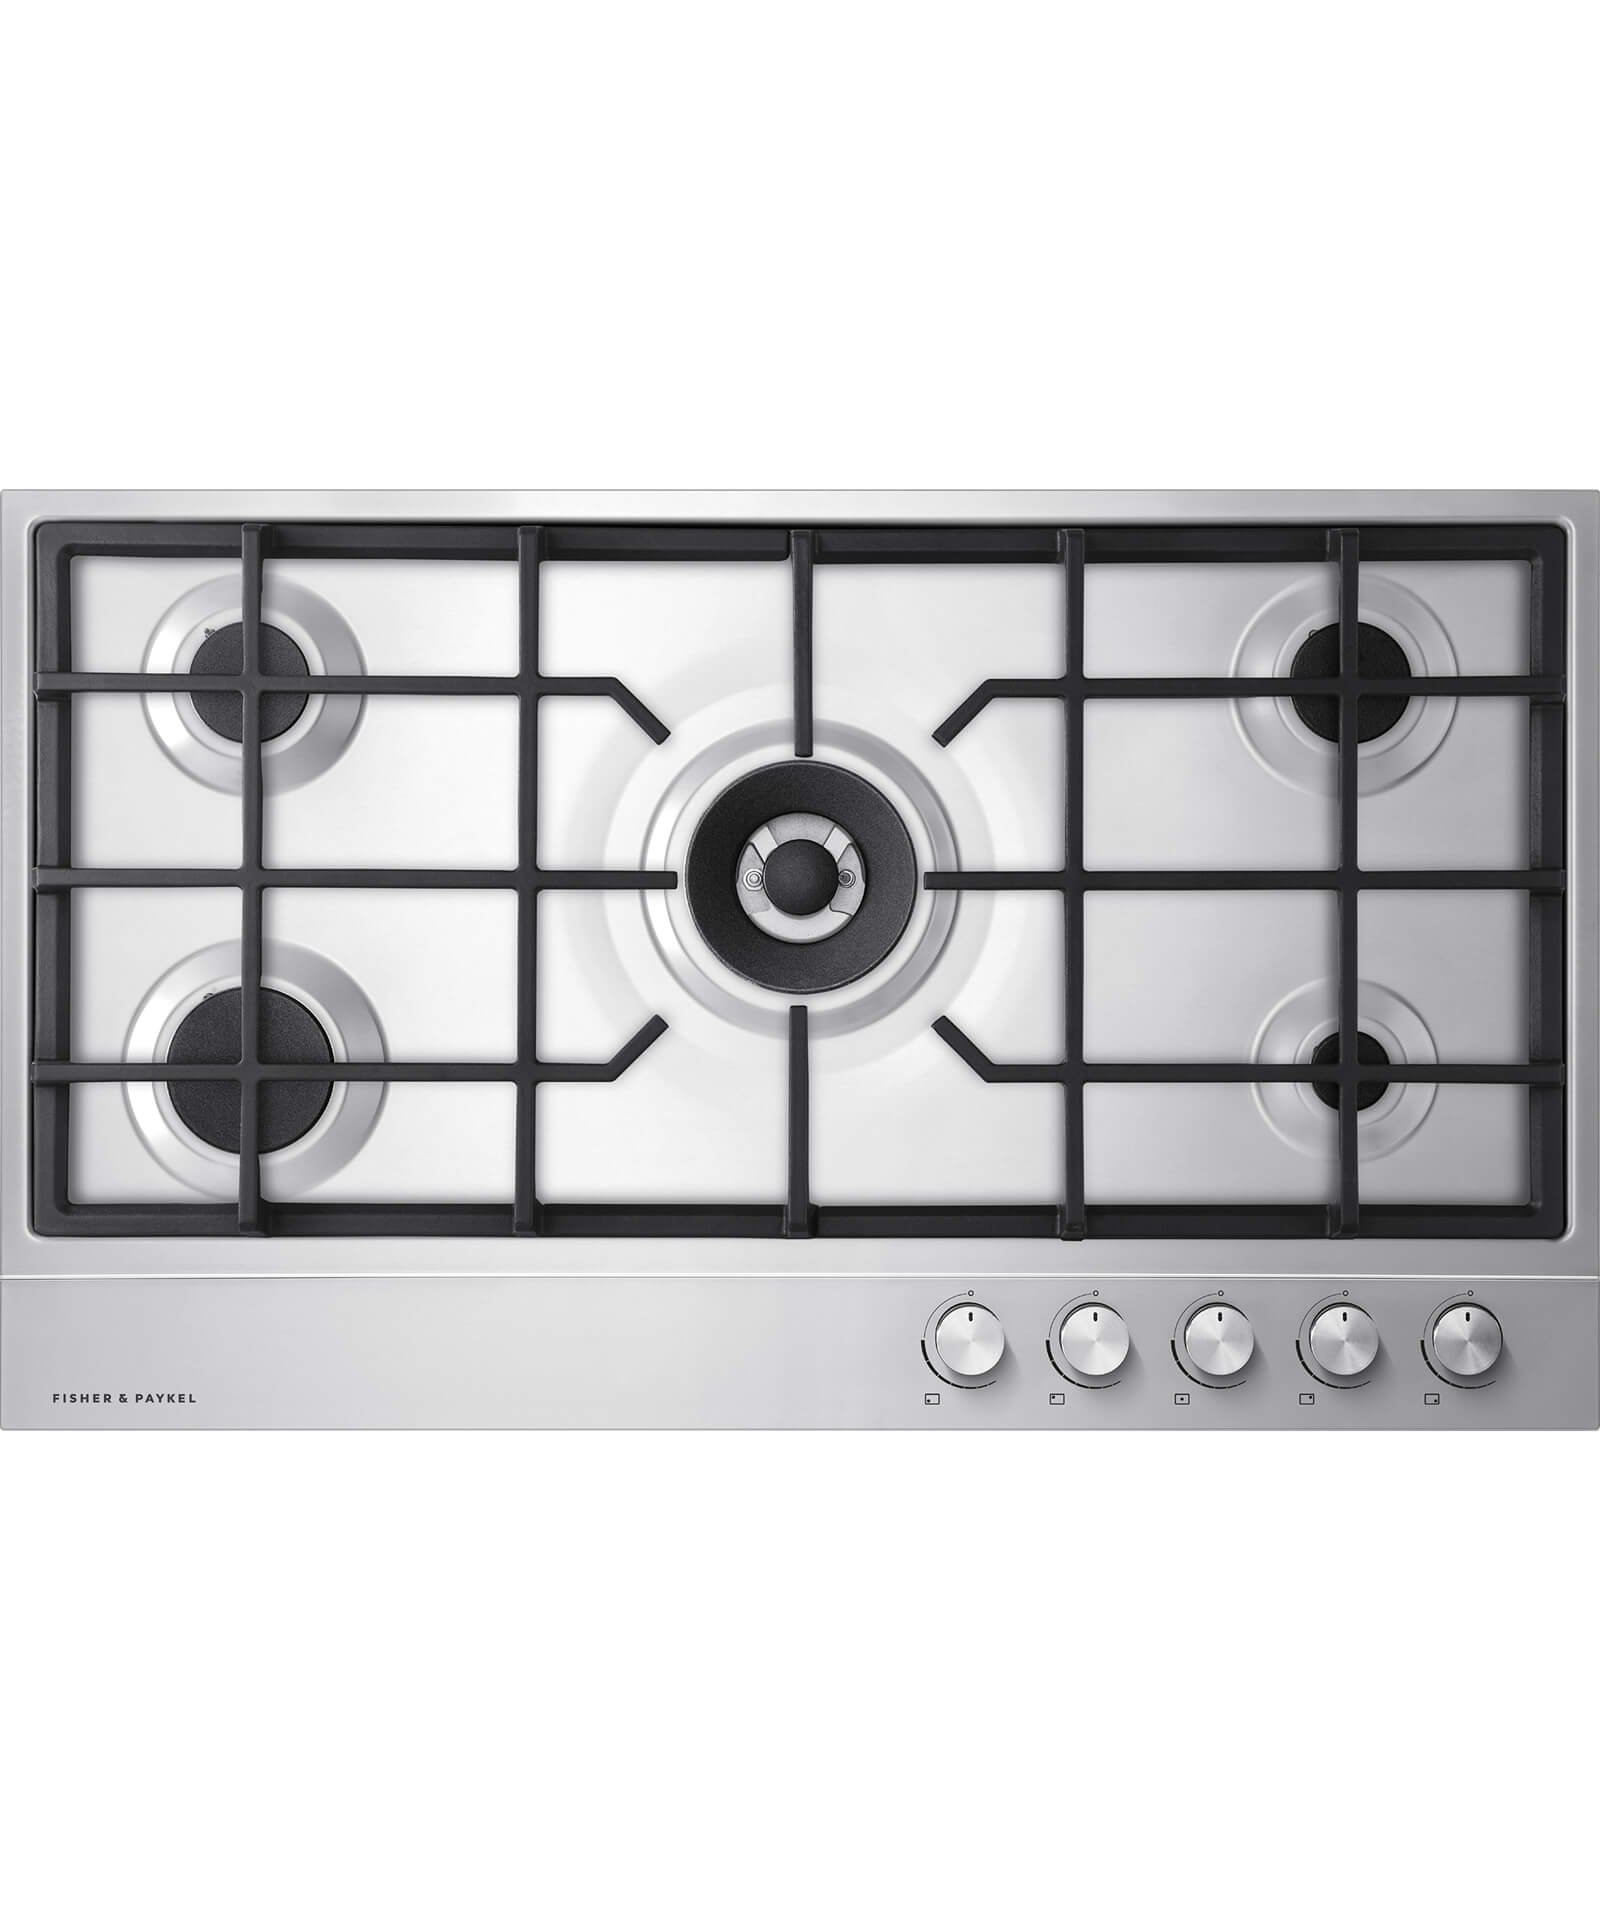 CG905DX1 - 90cm Gas on Steel Cooktop - 81444